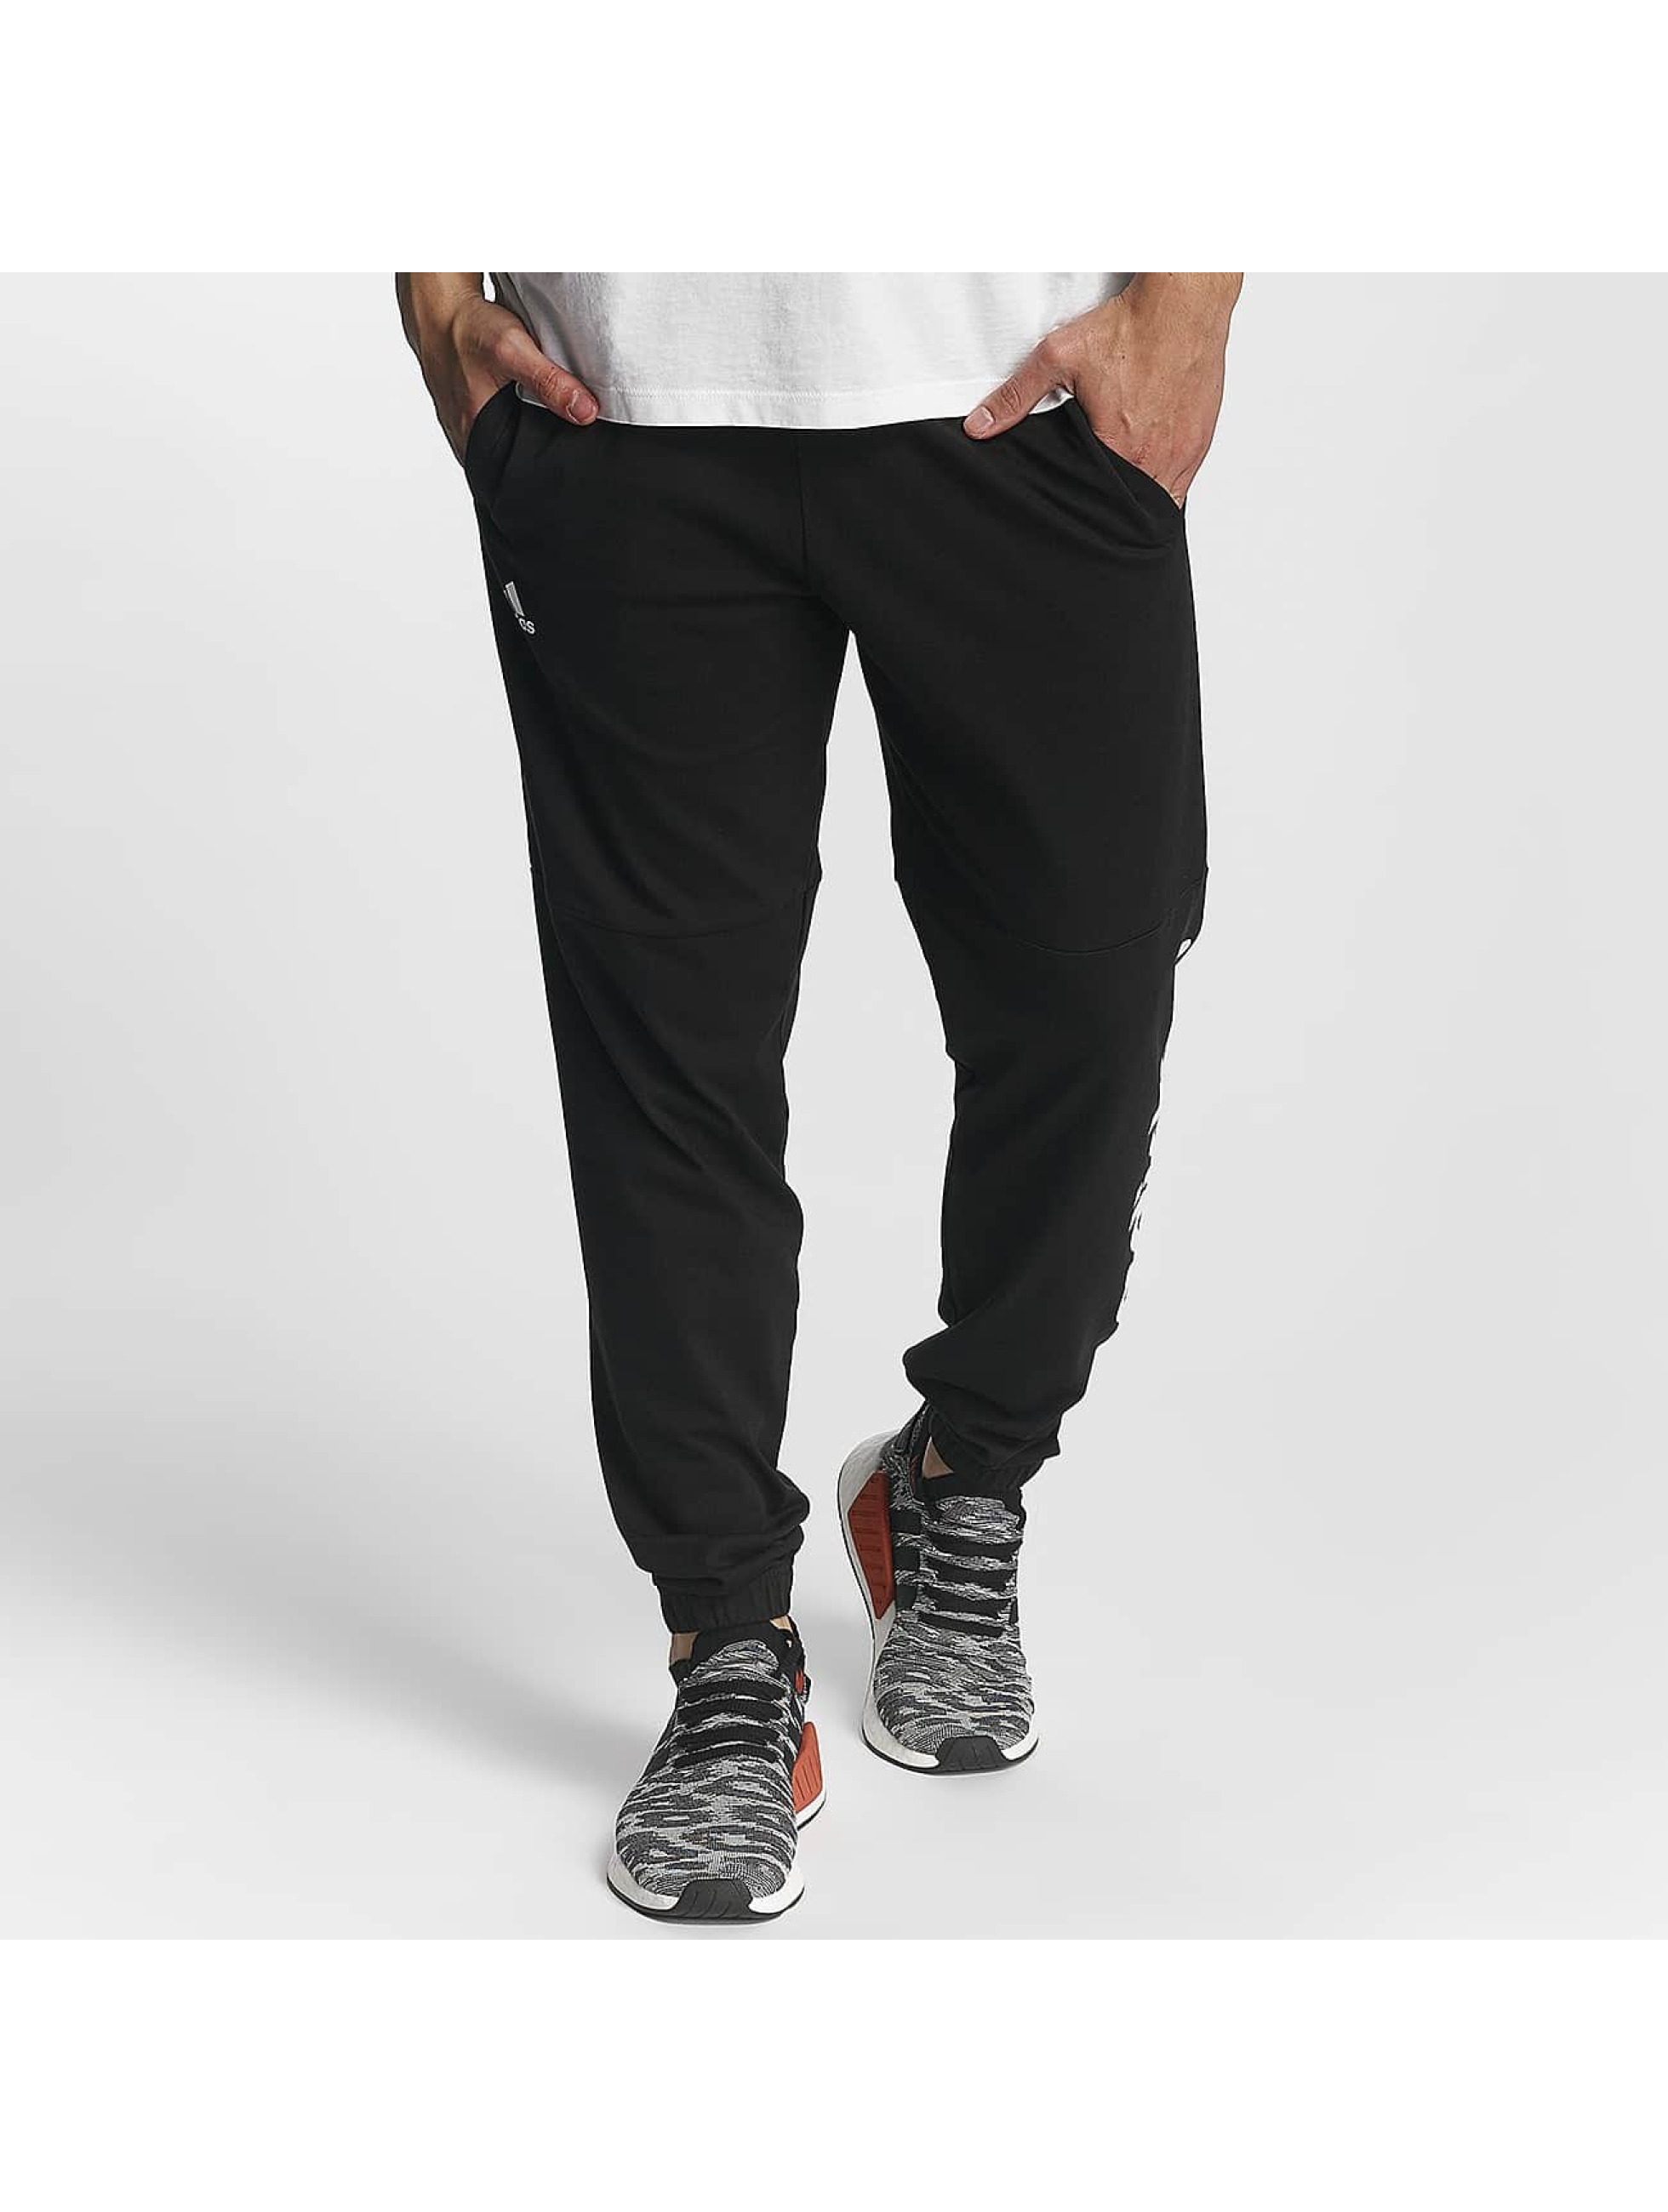 adidas Performance Männer Jogginghose Essentials Linear in schwarz